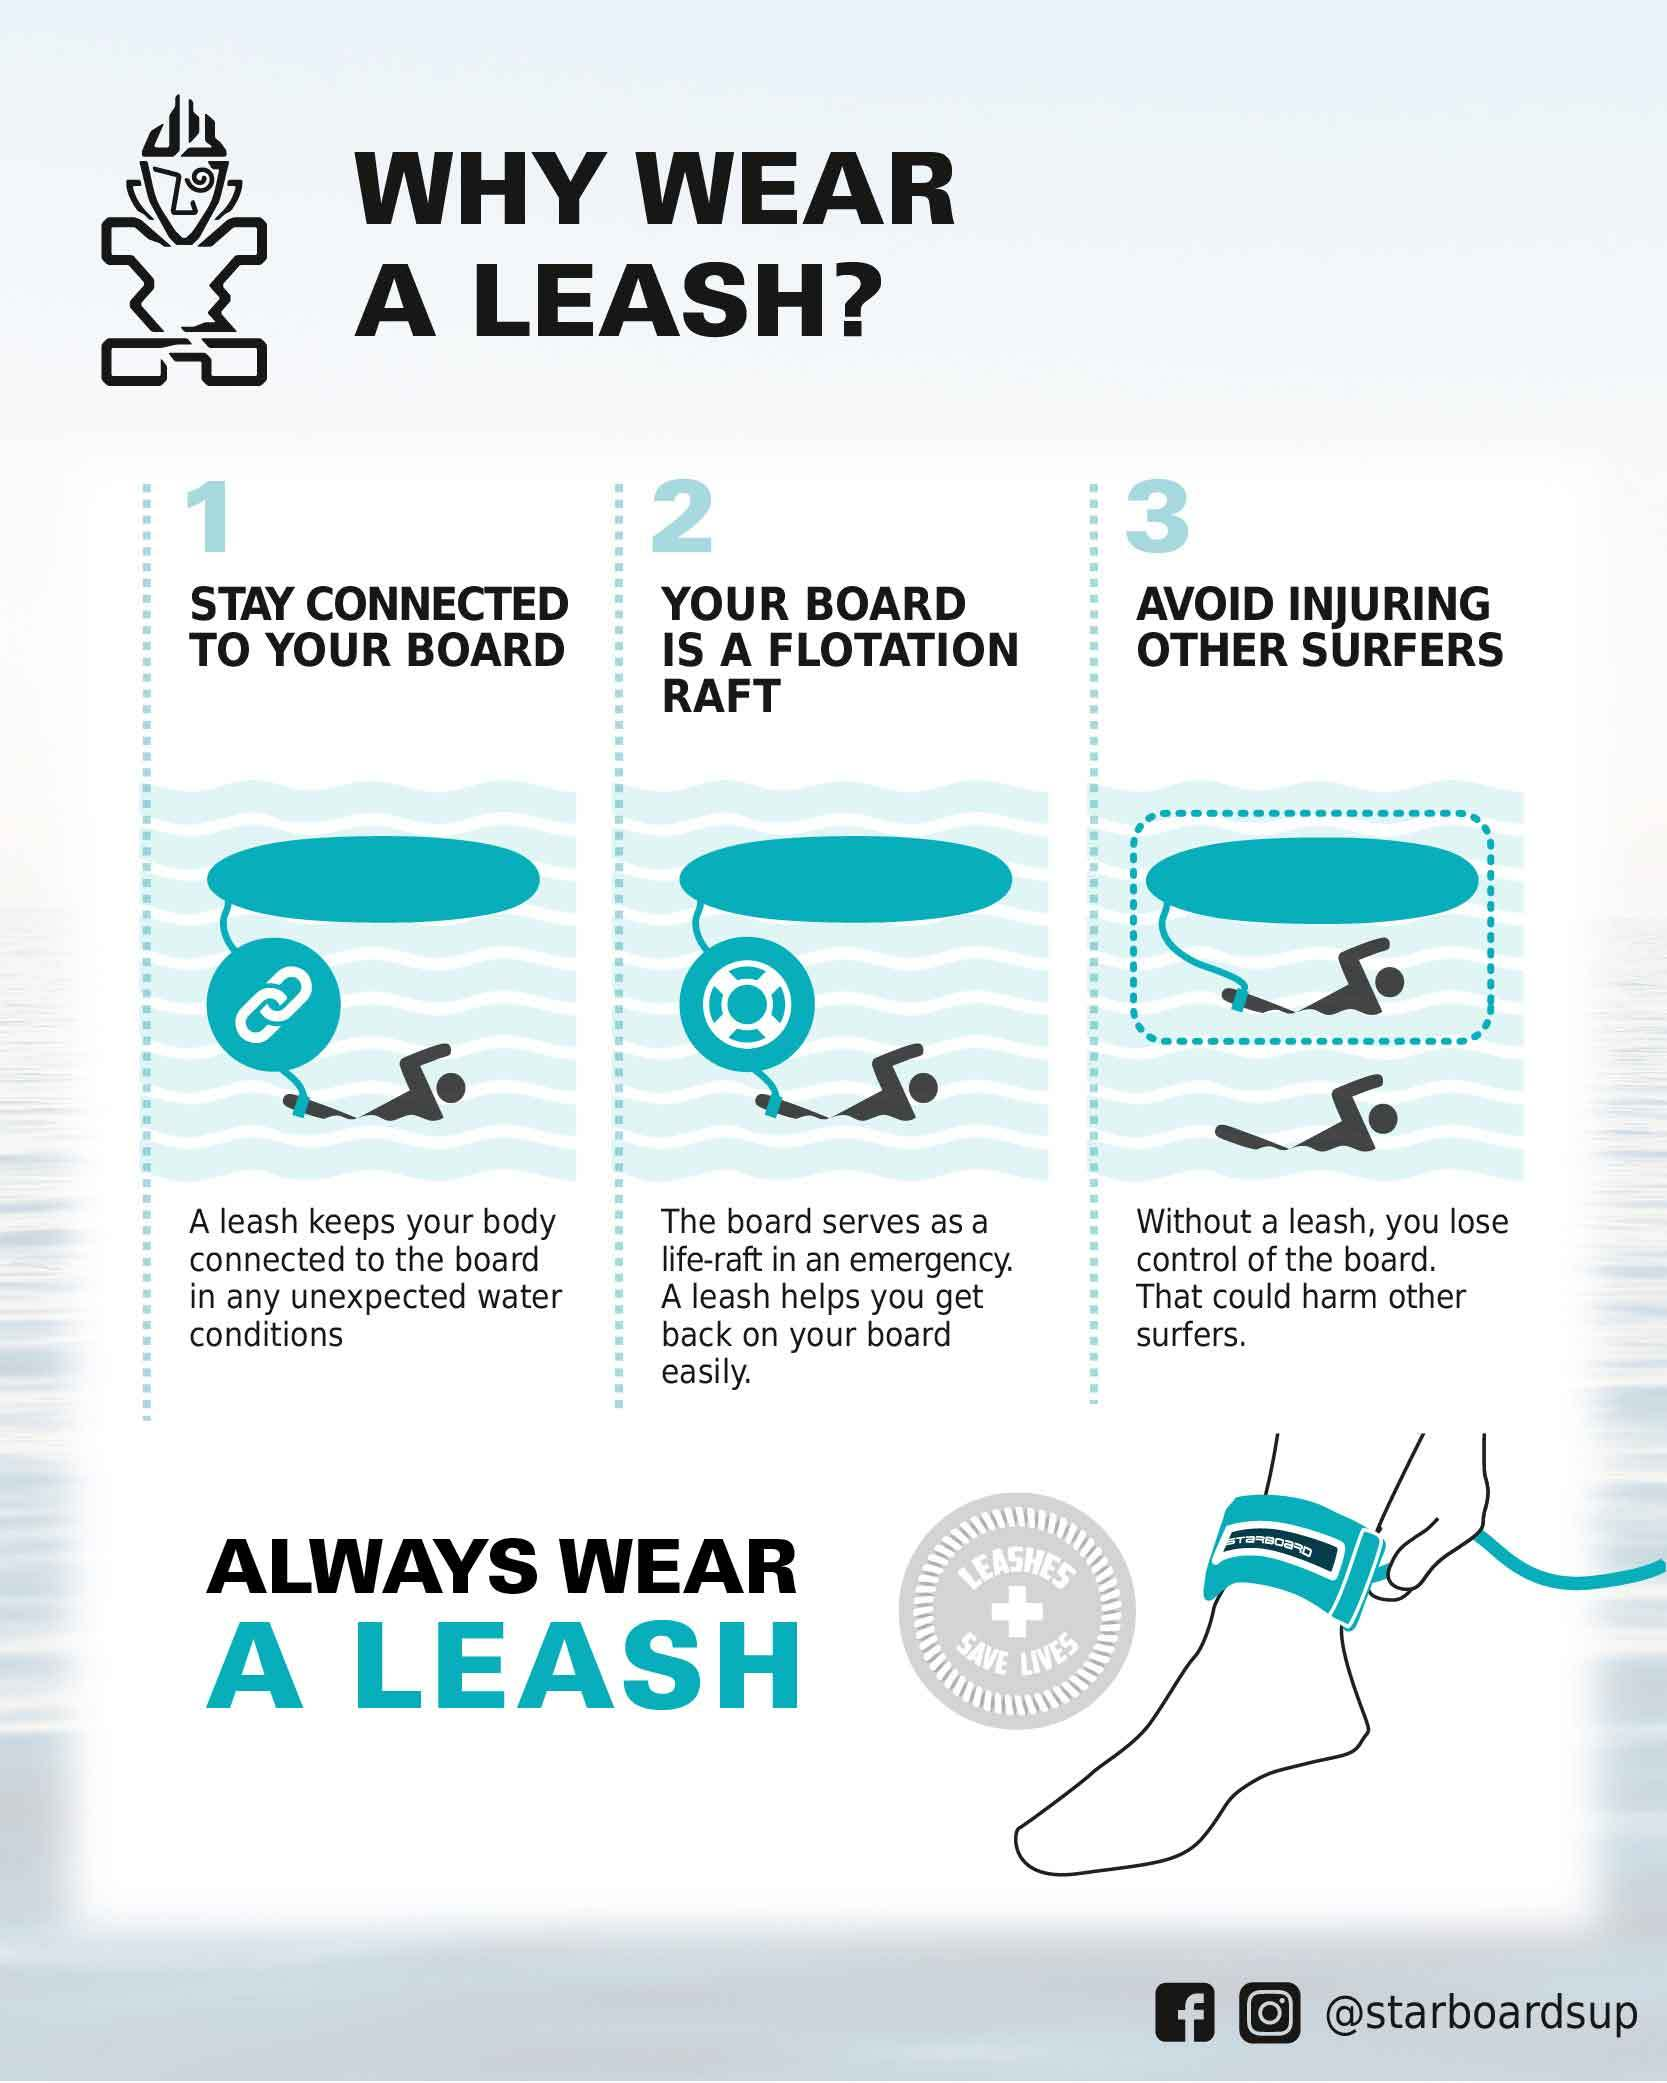 Why-wear-a-leash_V3-01